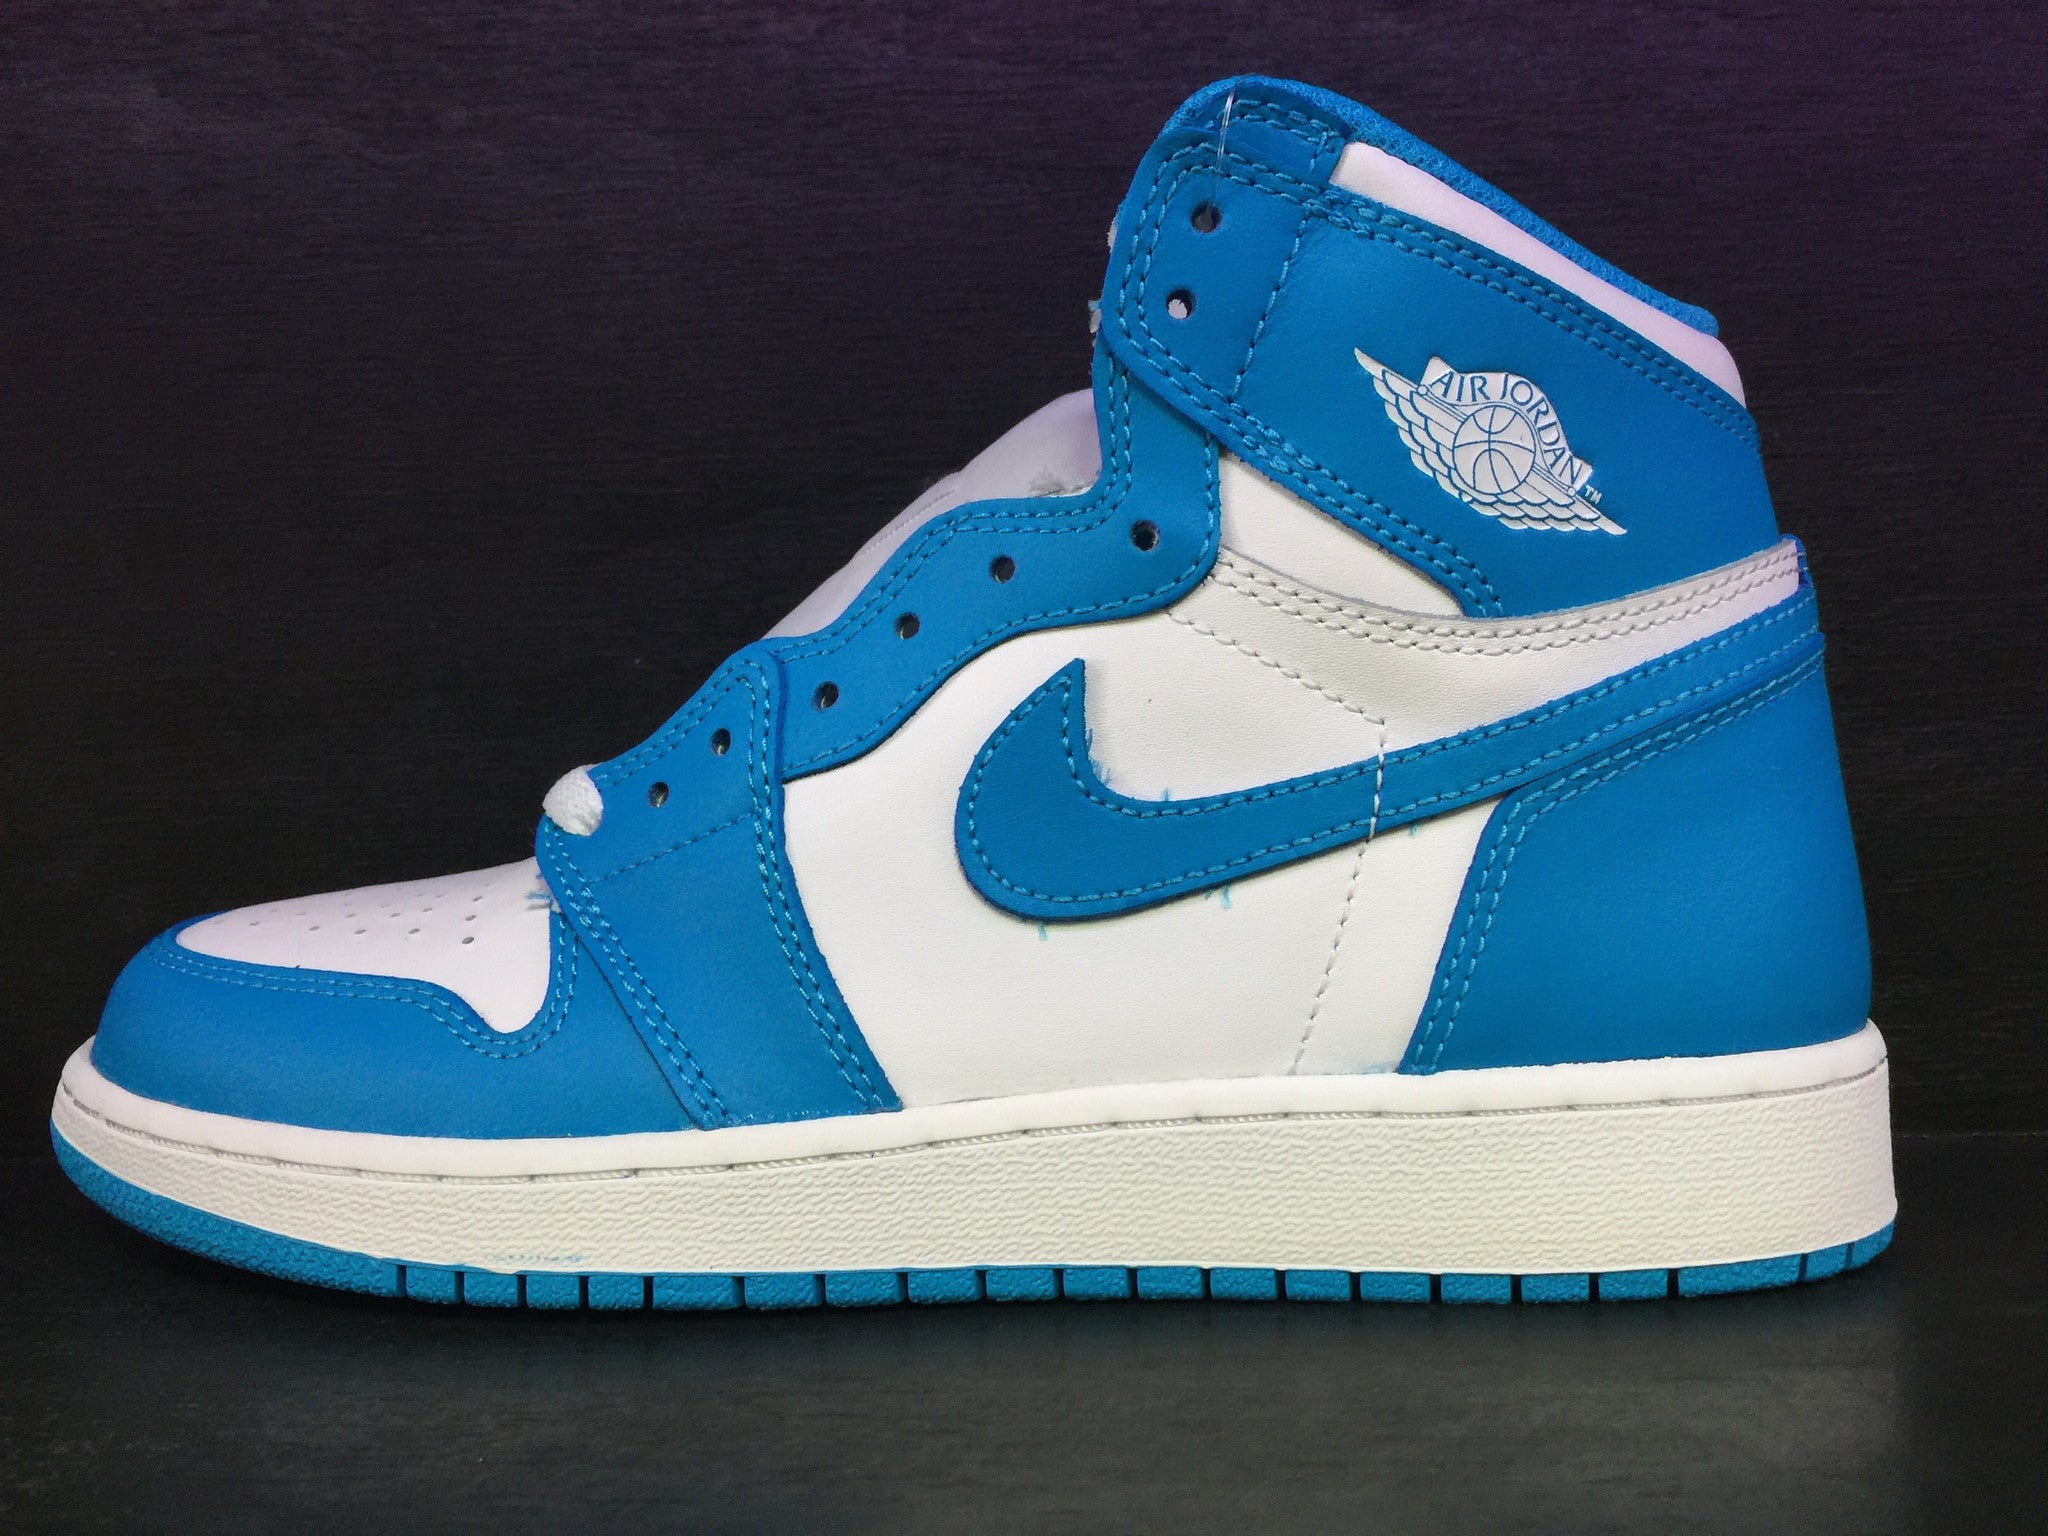 Air Jordan 1 Retro 'UNC' Grade School